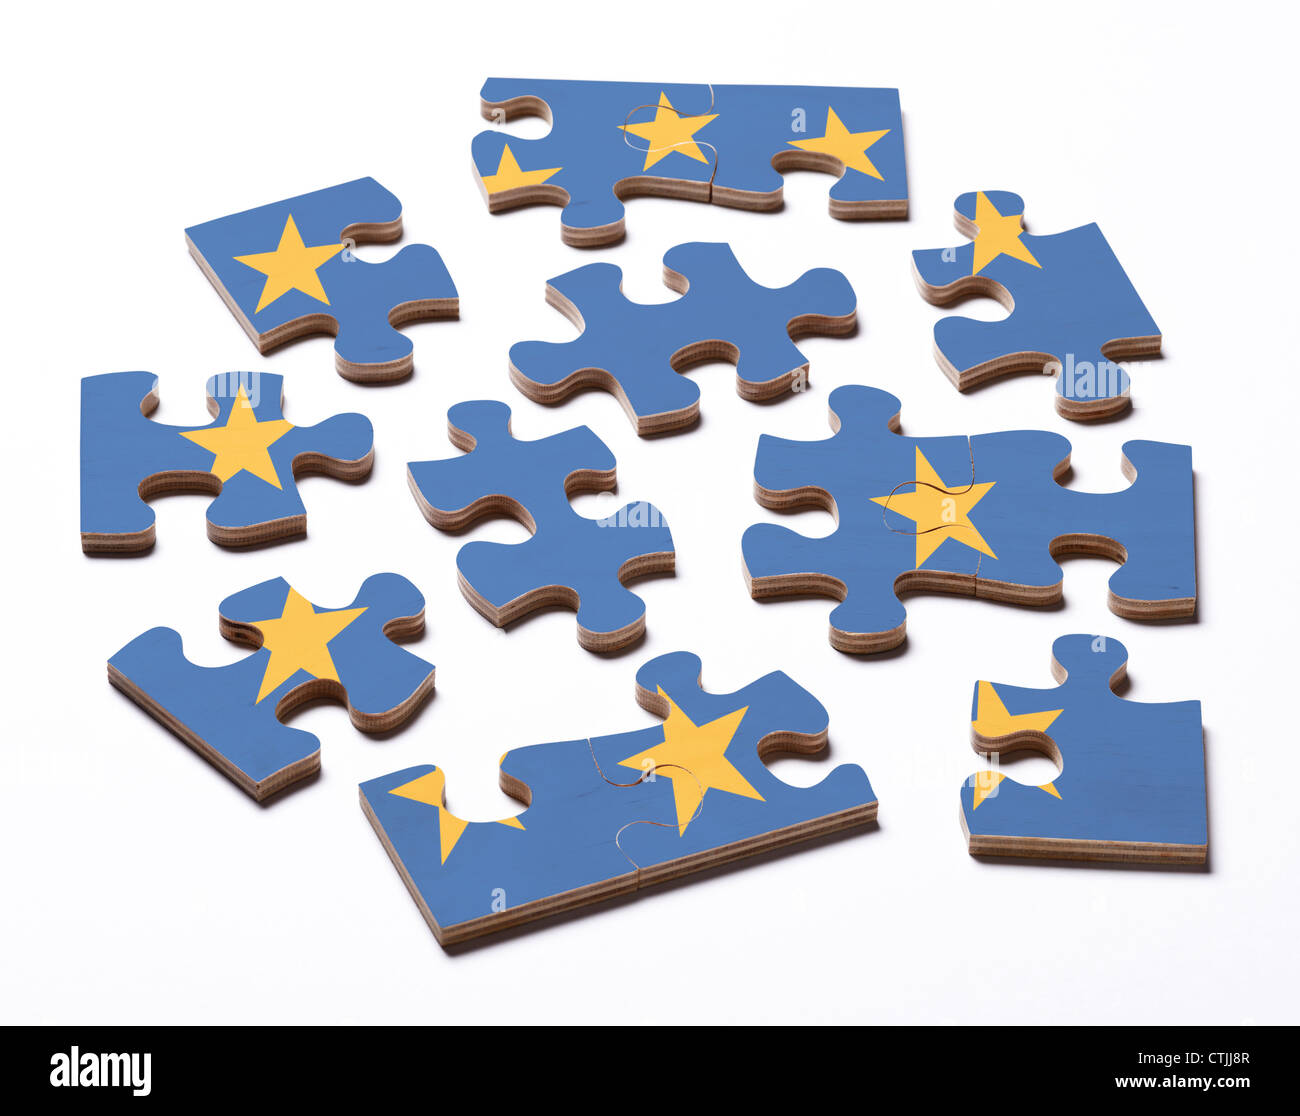 EU Europe flag on jigsaw pieces - Stock Image